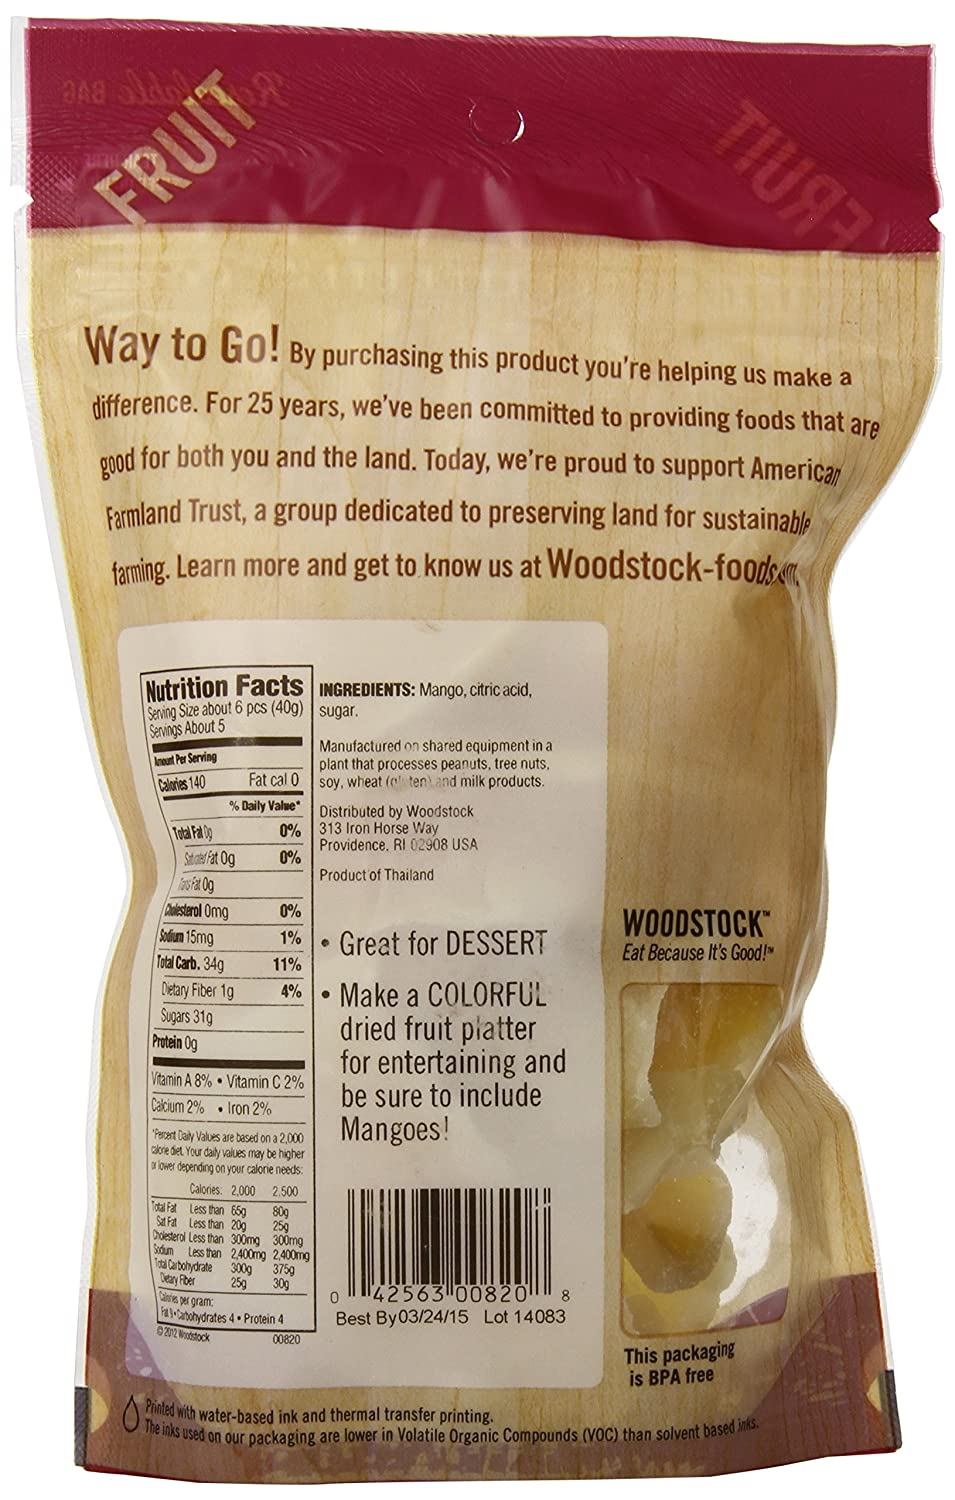 Woodstock Allnatural Mango Slices, Low Sugar, 75 Ounce: Amazon: Grocery &  Gourmet Marinades, Condiments, And Readytoeat Snacks